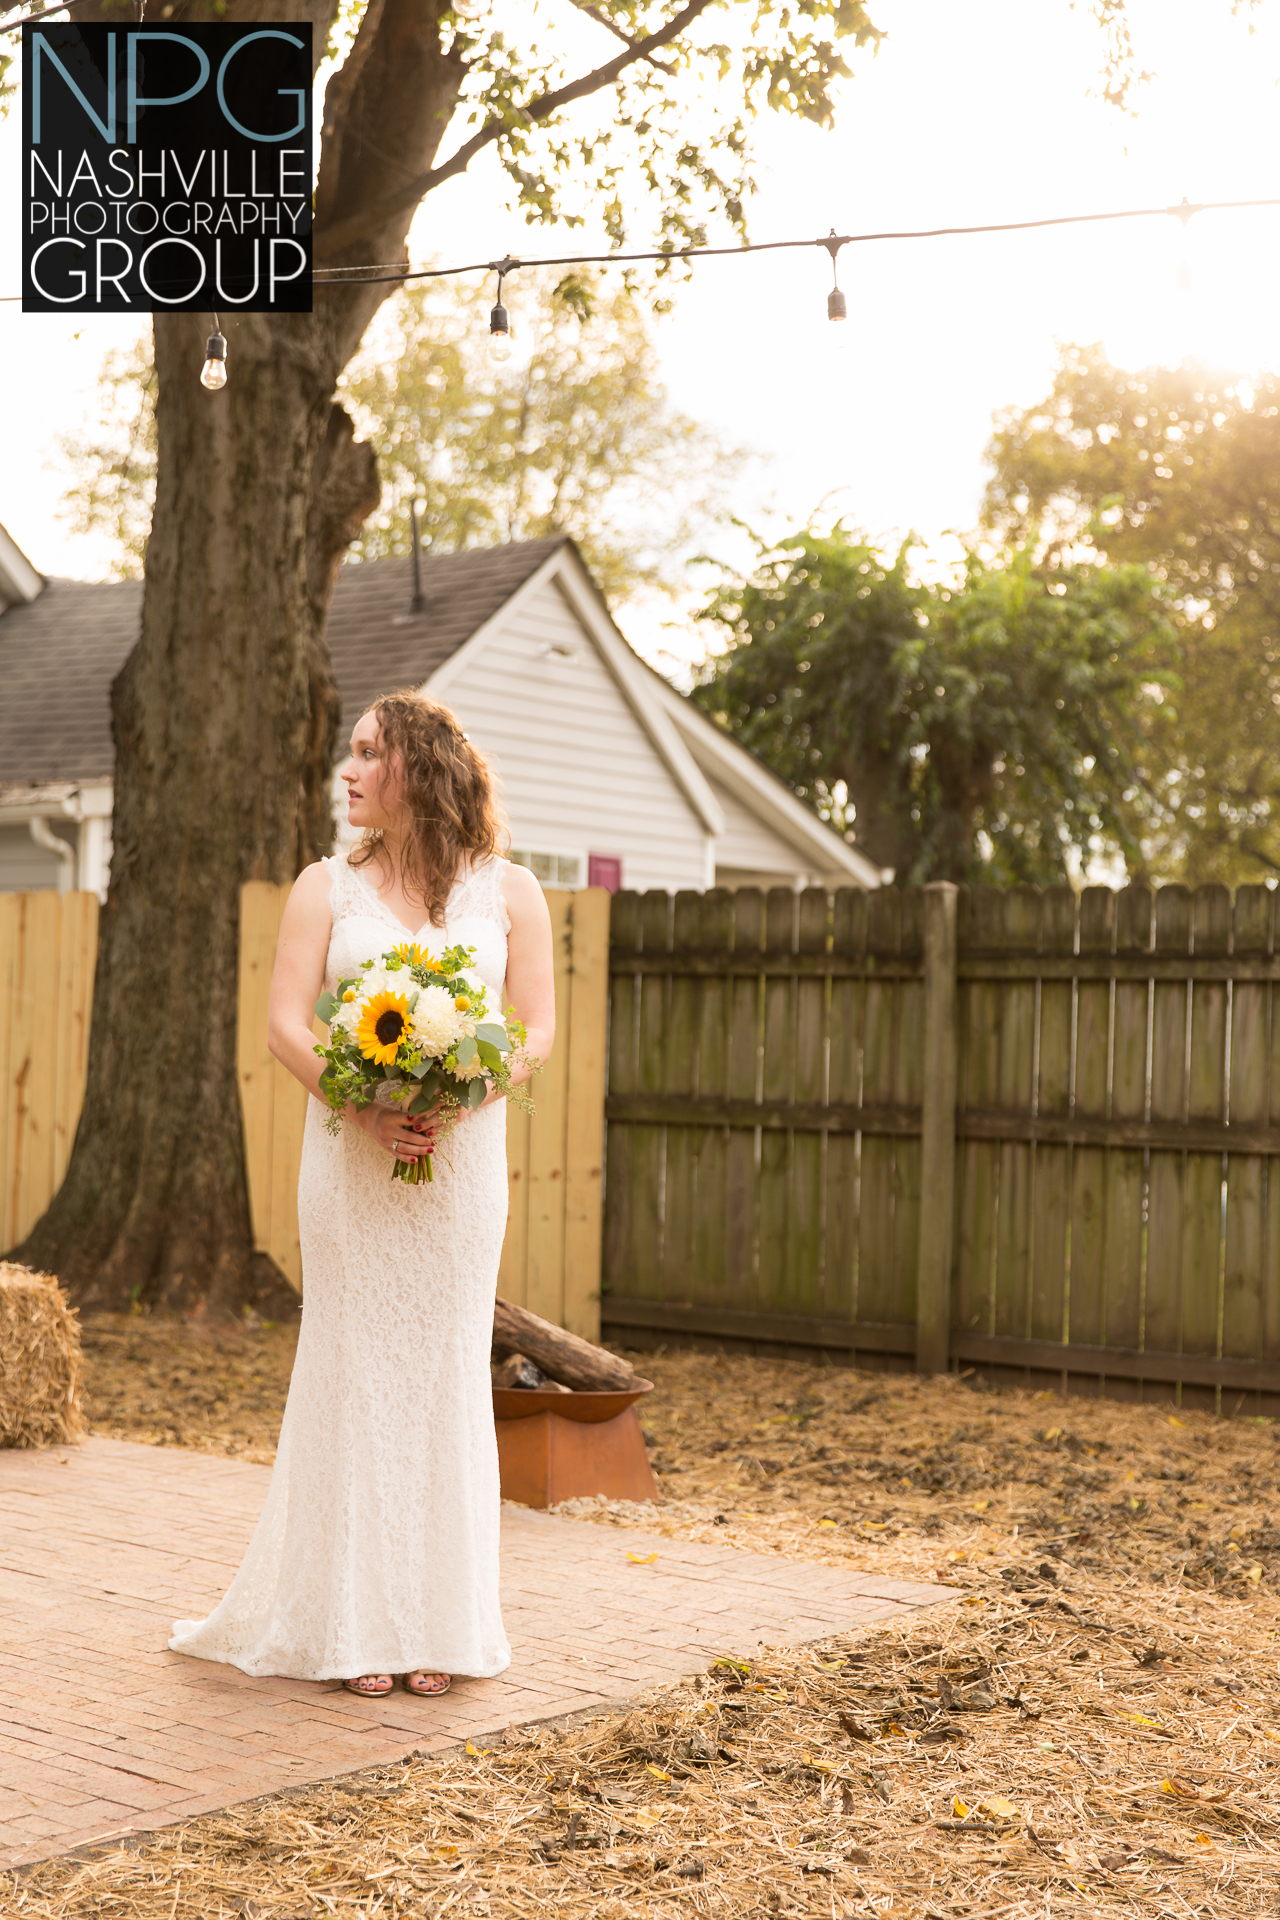 Nashville Photography Group wedding photographers1-14.jpg